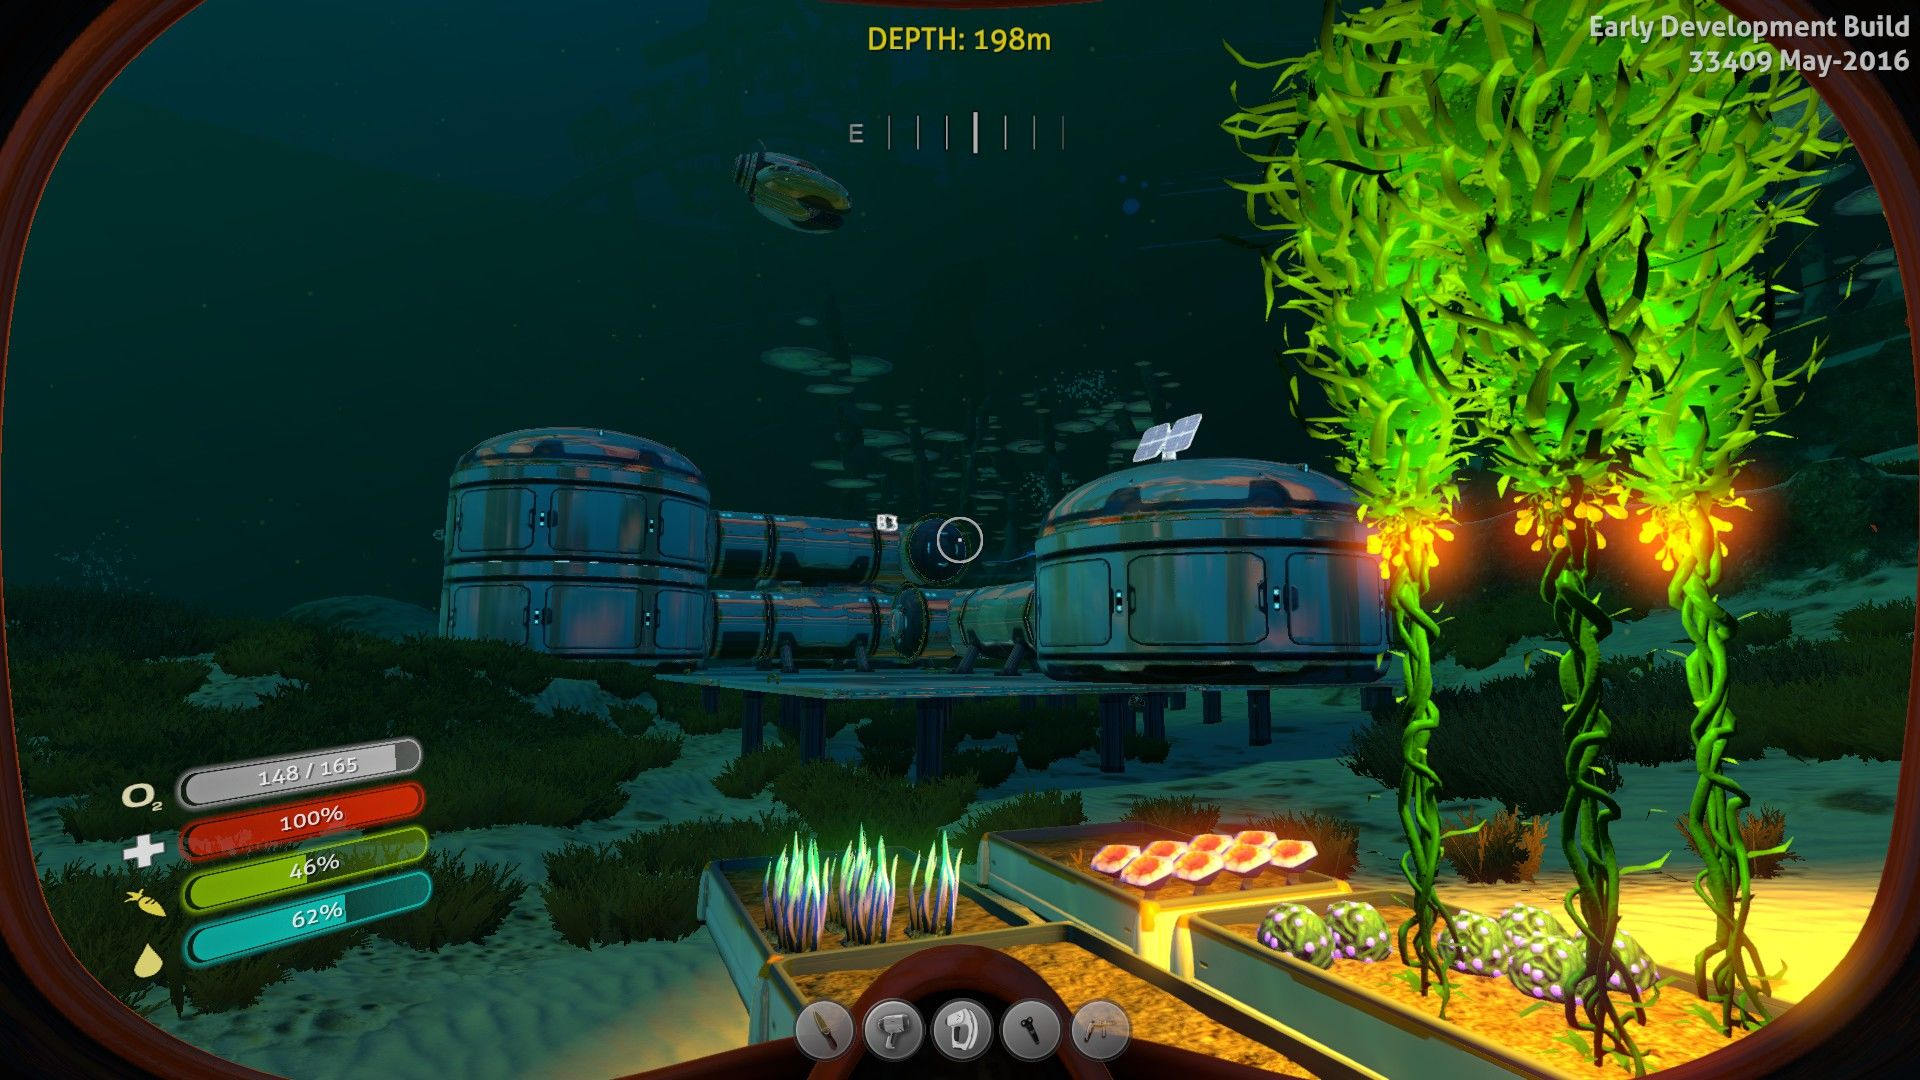 Subnautica Screenshots: Subnautica Screenshots For Windows